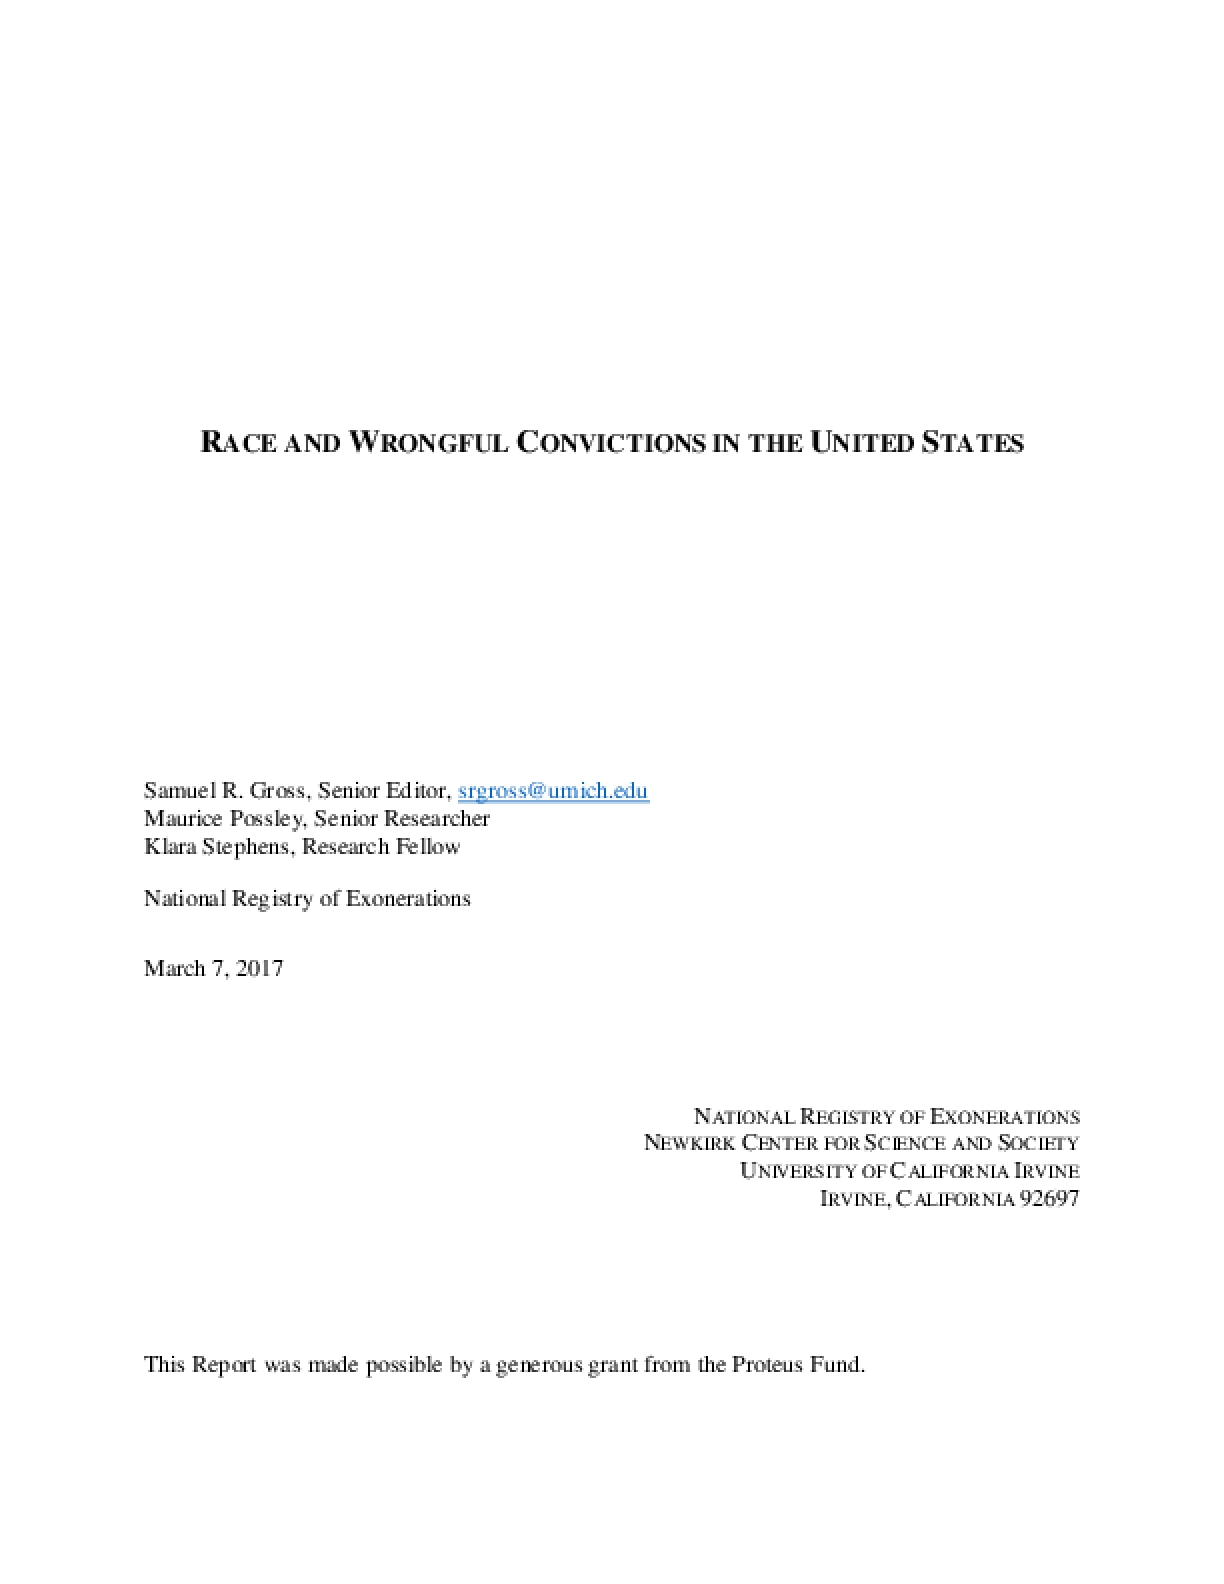 Race and Wrongful Convictions in the United States